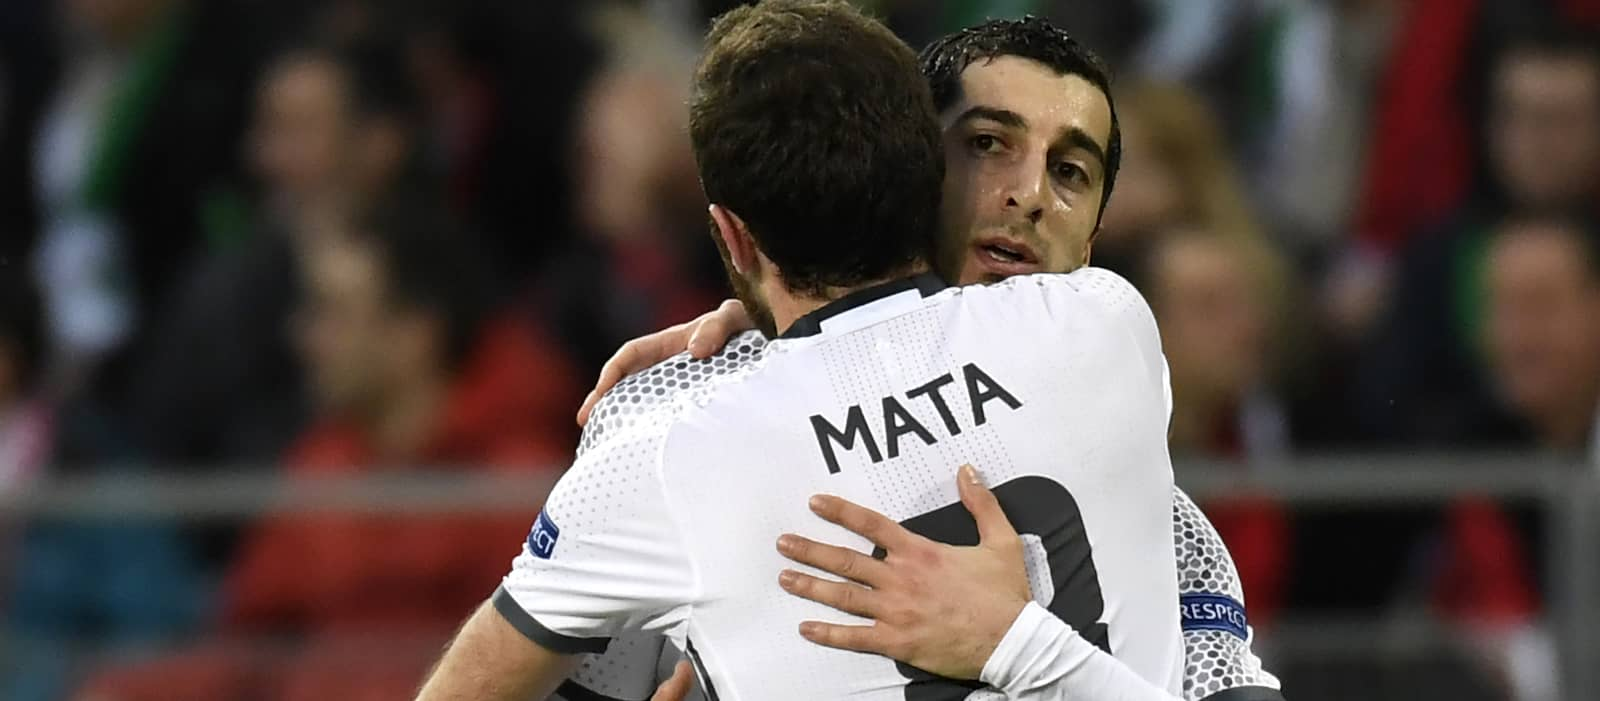 Henrikh Mkhitaryan proves he's one of Man United's best performers